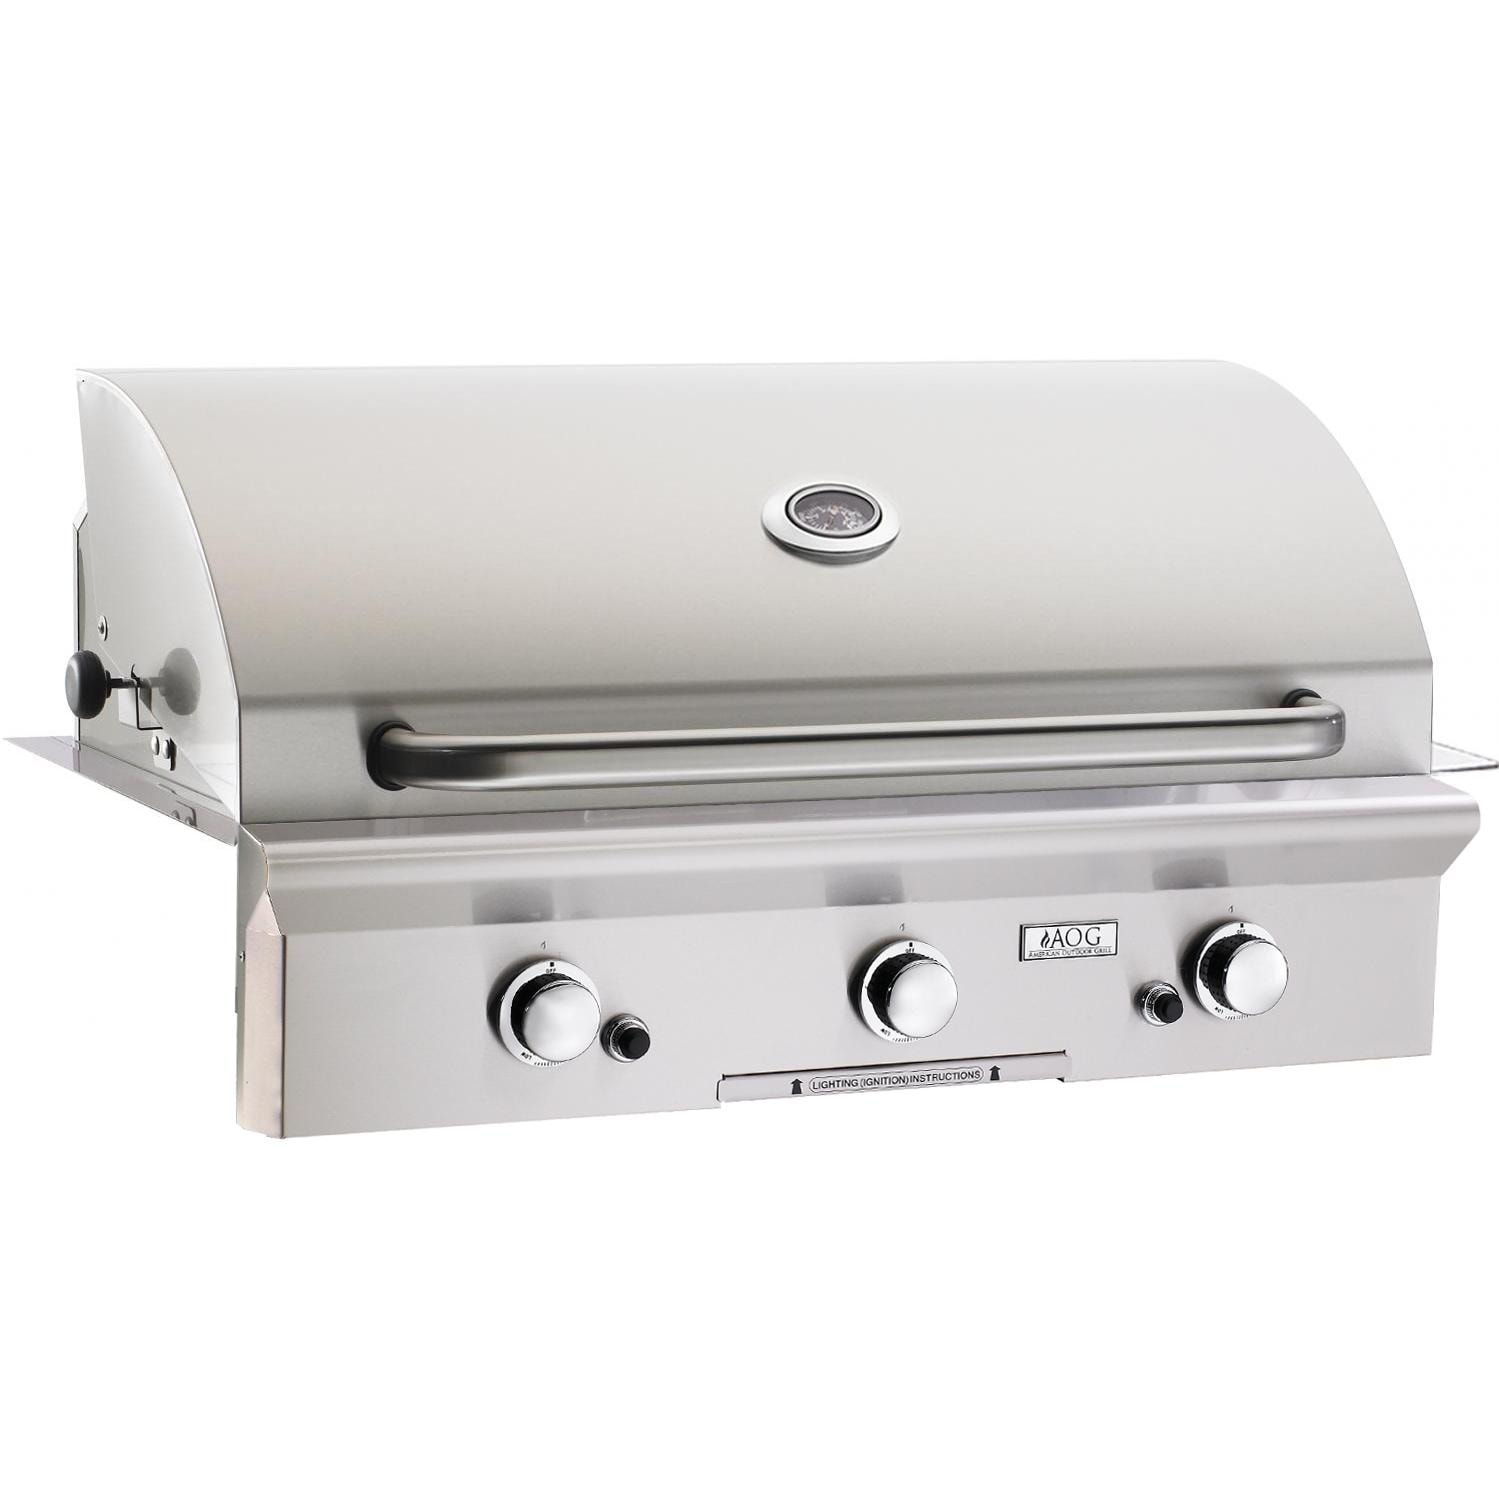 Outdoor Grill 36 Inch Built In Propane Gas Grill Ships As Natural Gas